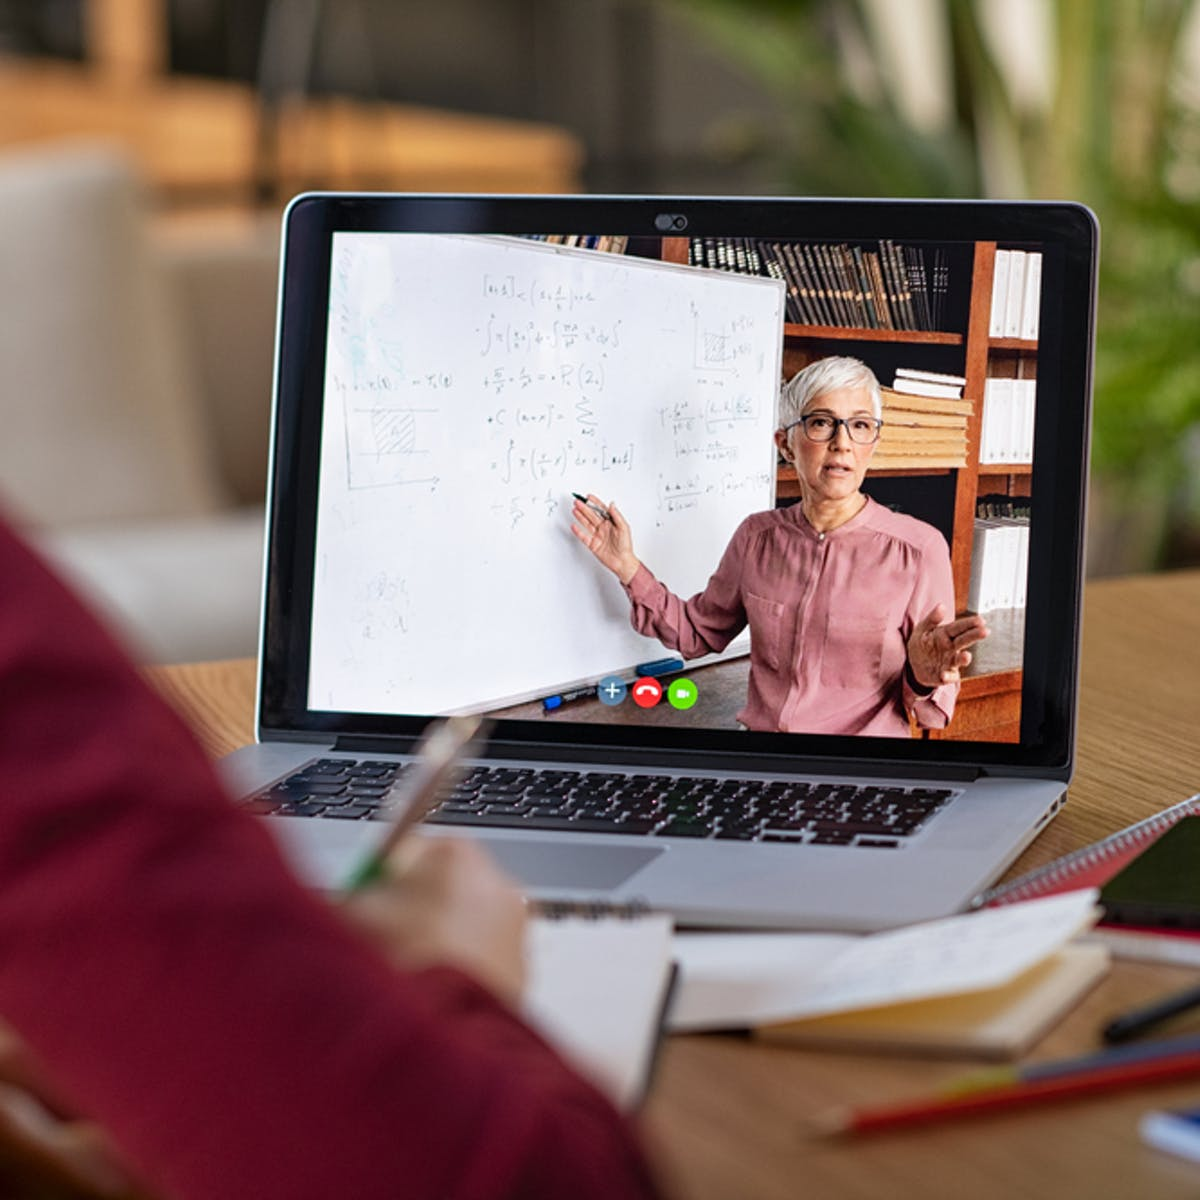 The 7 elements of a good online course